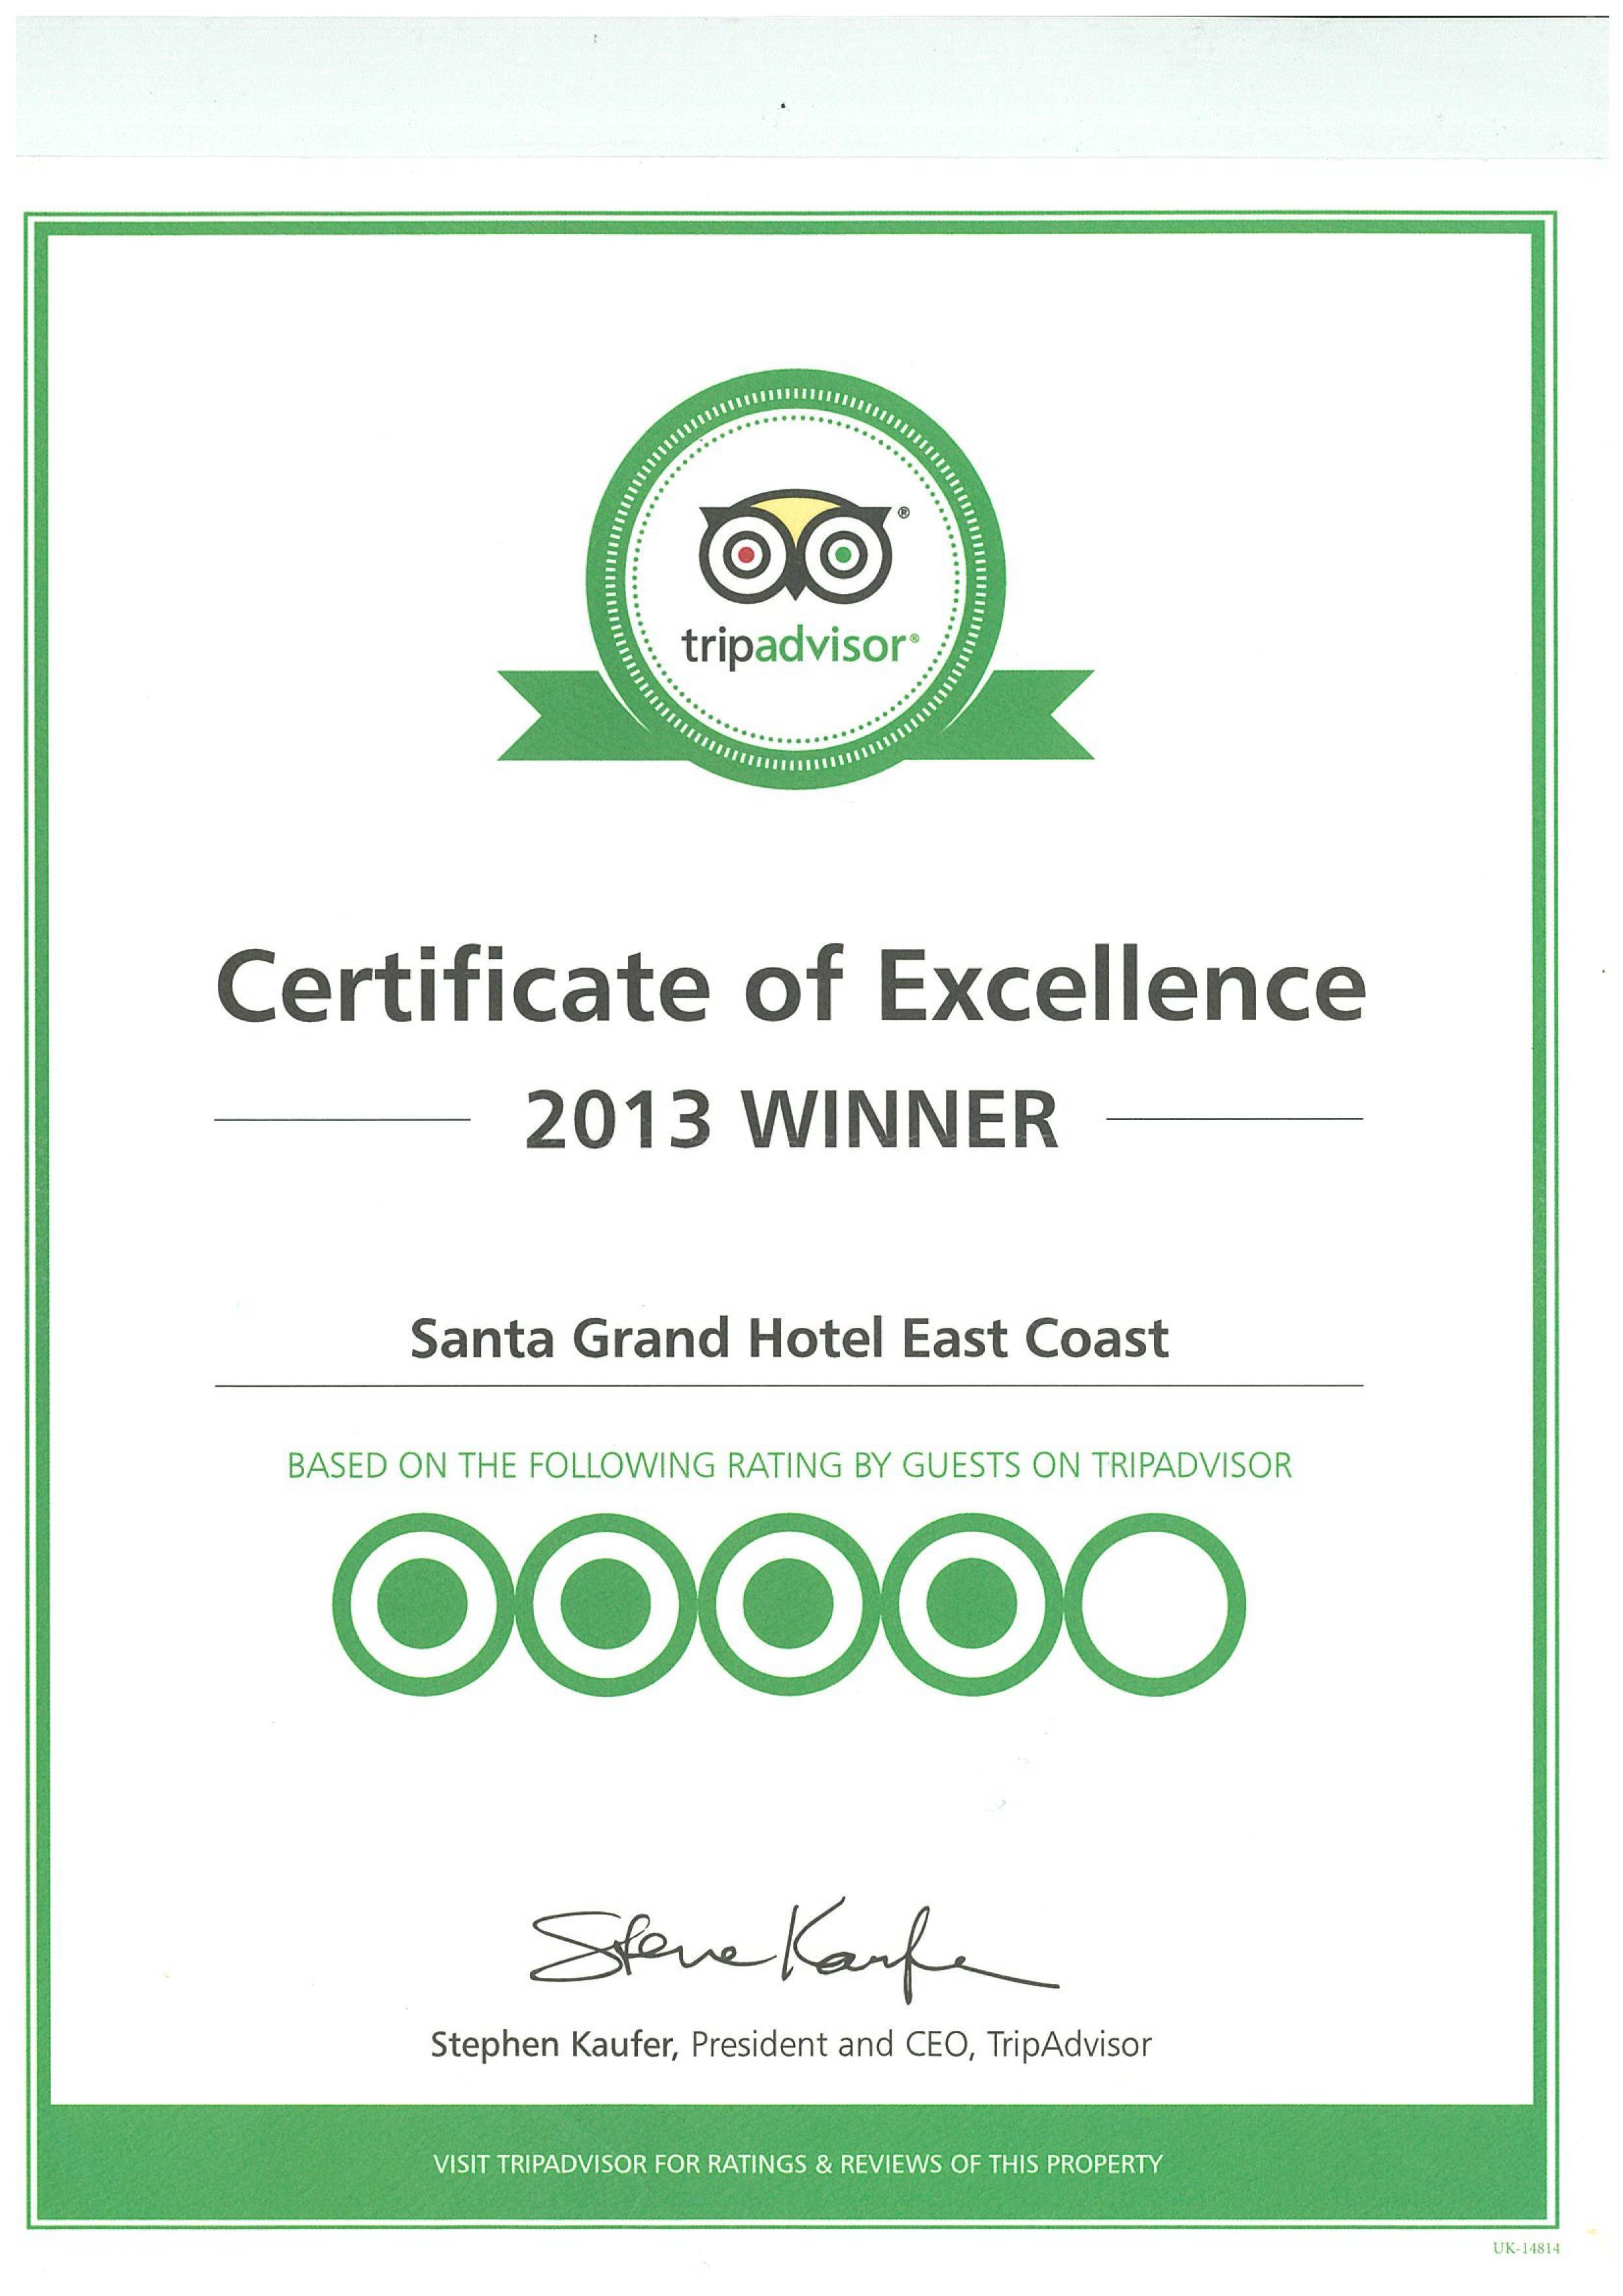 Santa Grand Hotel East Coast Trip Advisor Certificate 2013